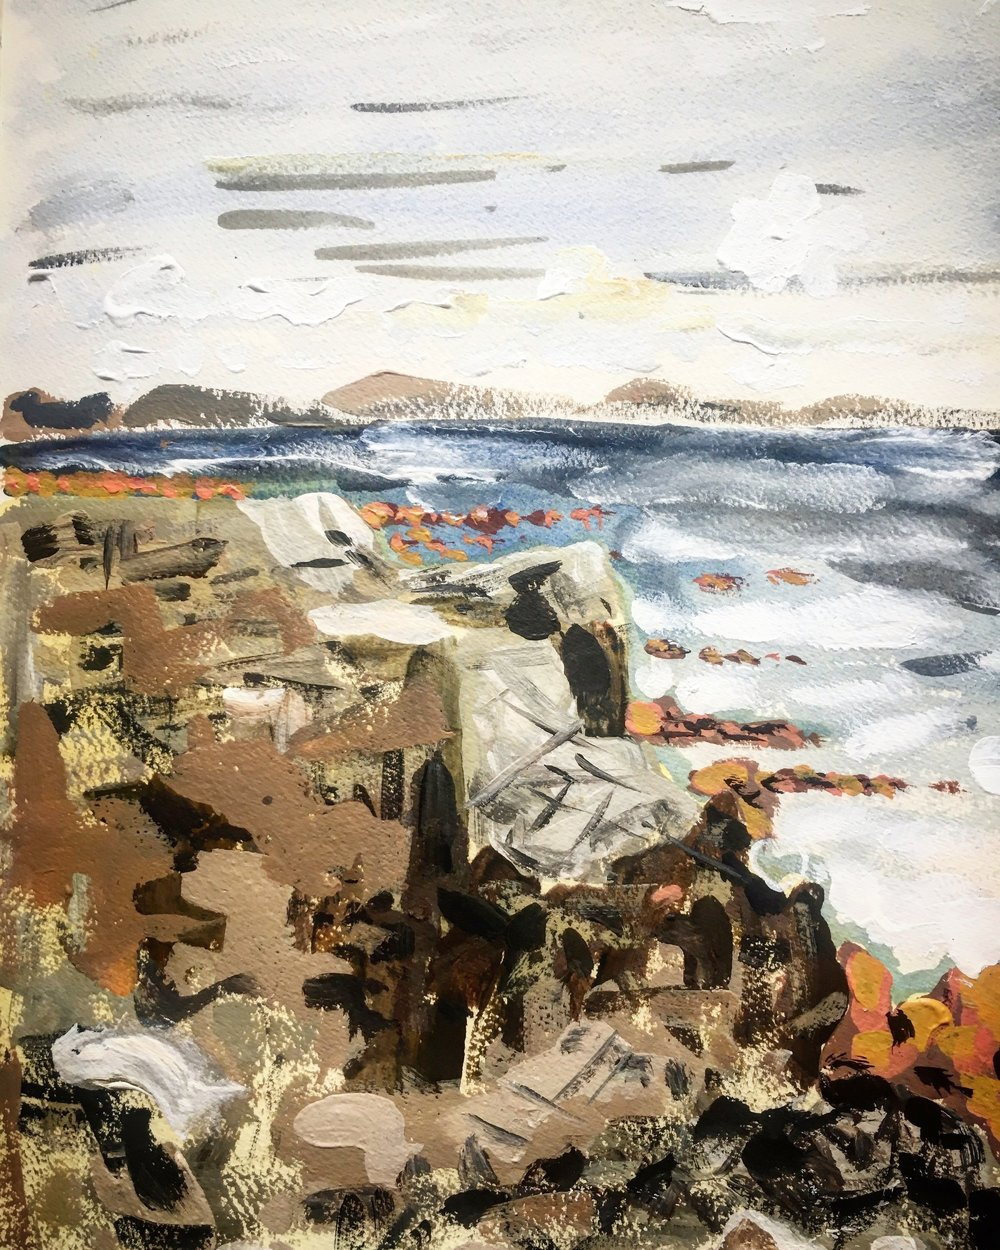 Rocks, Sea and wind, Rossadillisk Co. Galway, acrylic on paper 42x30cm August 2018